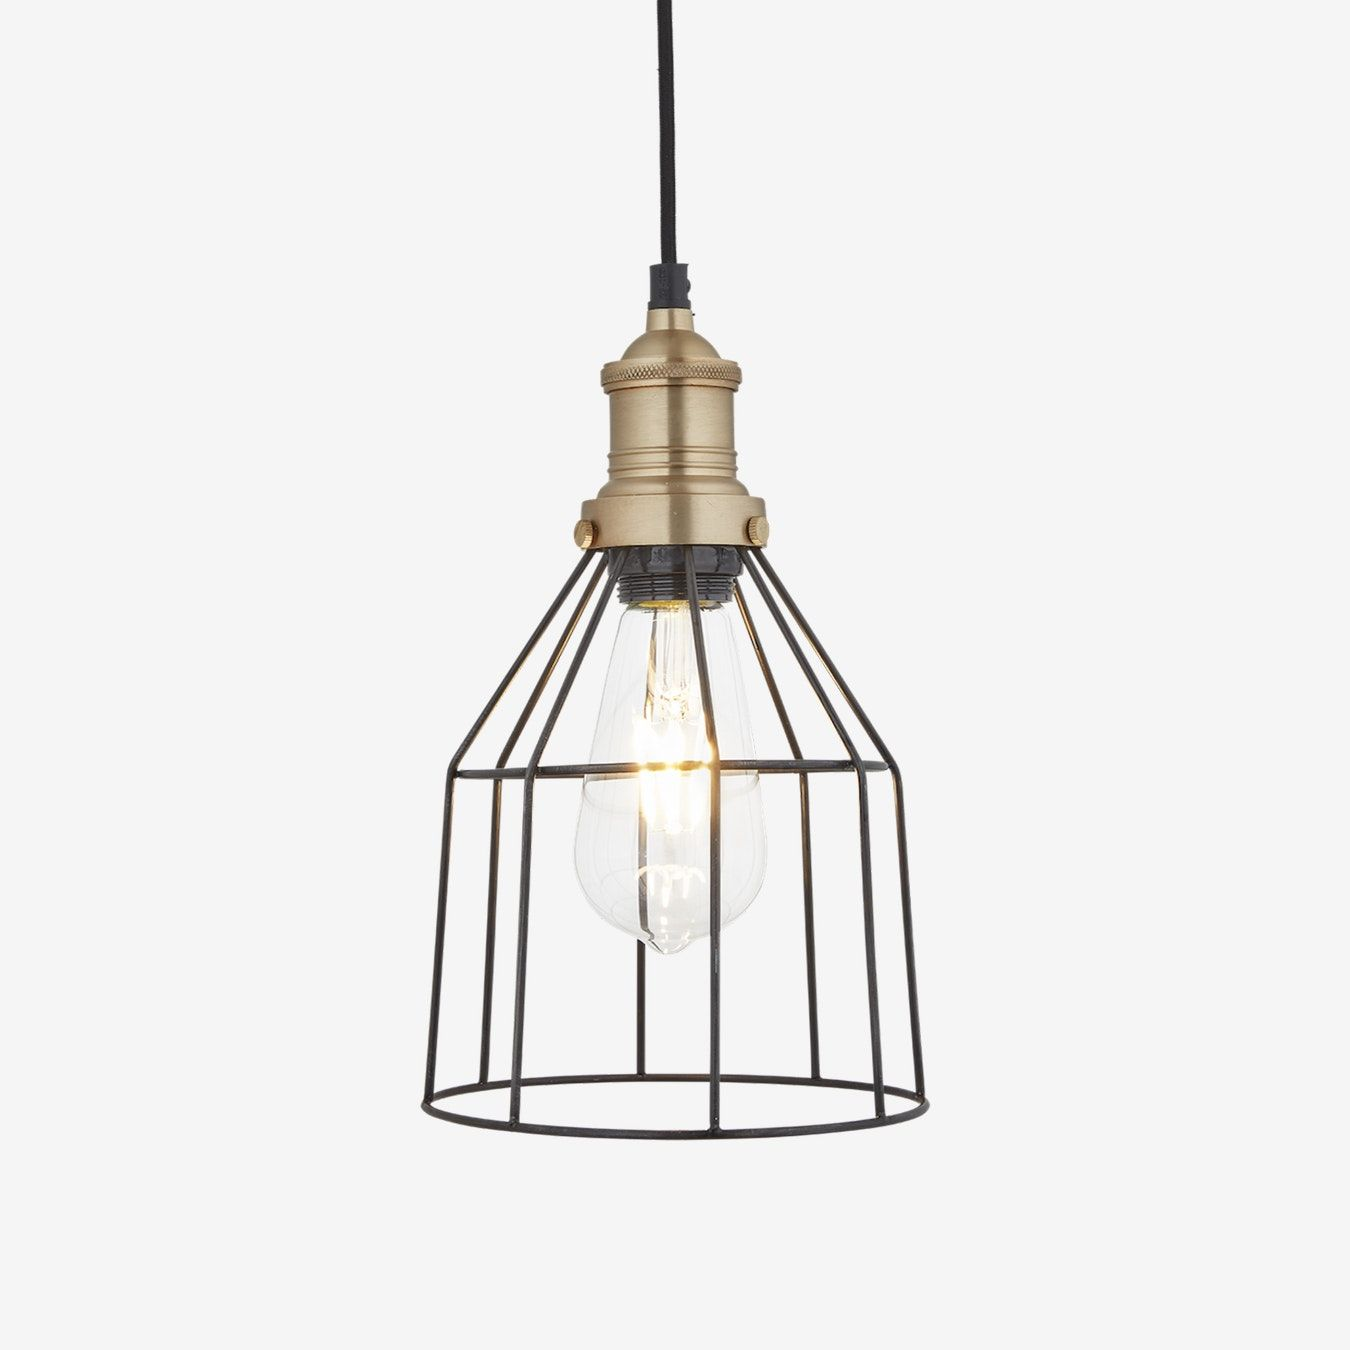 6 Inch Brooklyn Wire Cage Pendant Light In Pewter W Brass Holder In 2020 Wire Cage Pendant Light Cage Pendant Light Pendant Light